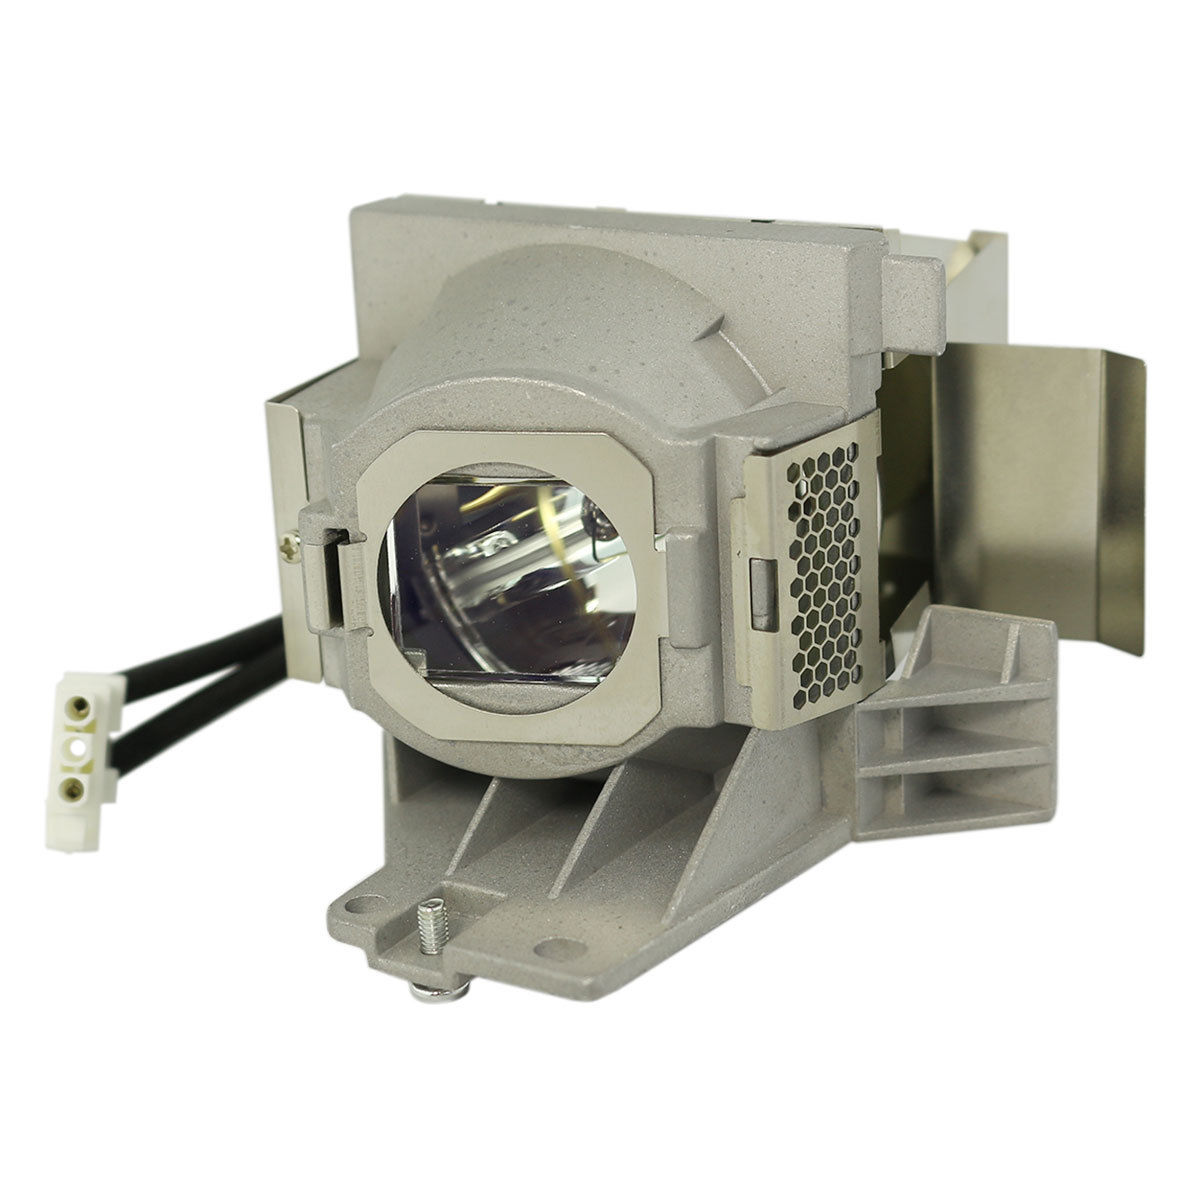 RLC-093 RLC093 P-VIP 190/0.8 E20.9 for VIEWSONIC PJD5555W PJD6550LW PJD6551LWS PJD5553LWS Projector Bulb Lamp with housing женский закрытый купальник brand new vip 5555 2015 44 46 48 50 52 xxl 4xl falc 5555 vip